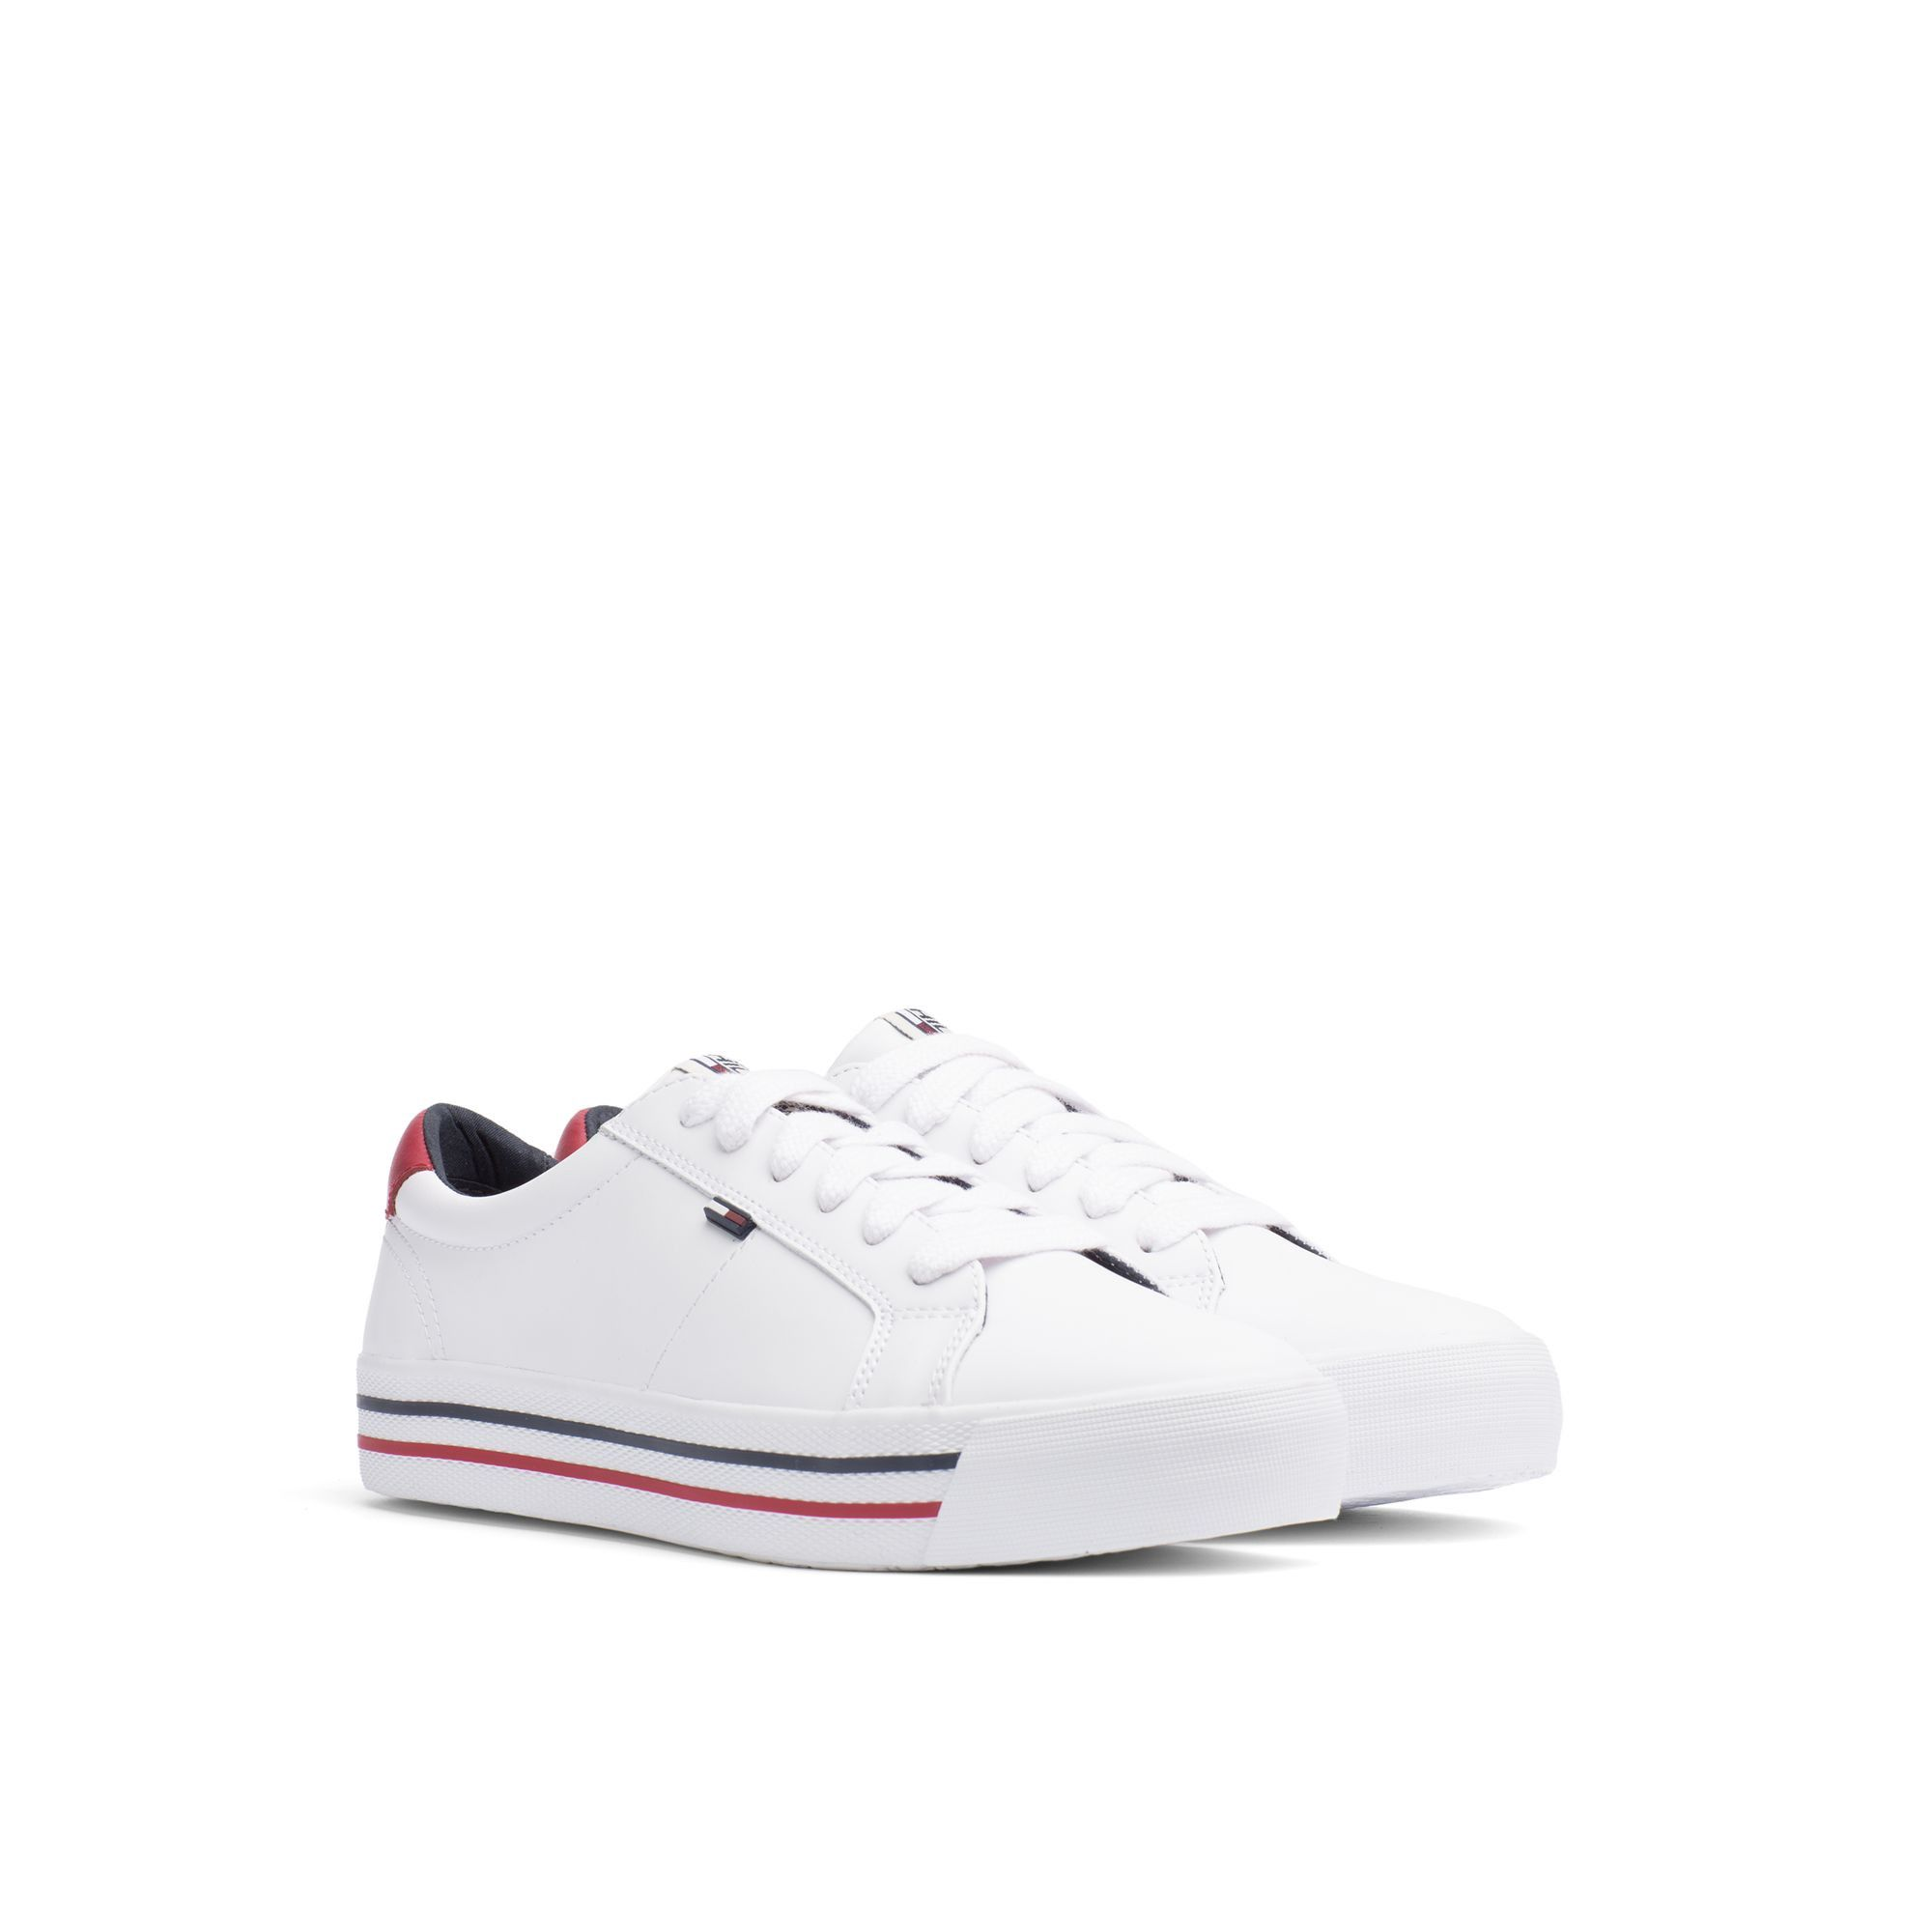 12364731e836f TOMMY HILFIGER STRIPED SOLE SNEAKER - WHITE.  tommyhilfiger  shoes ...